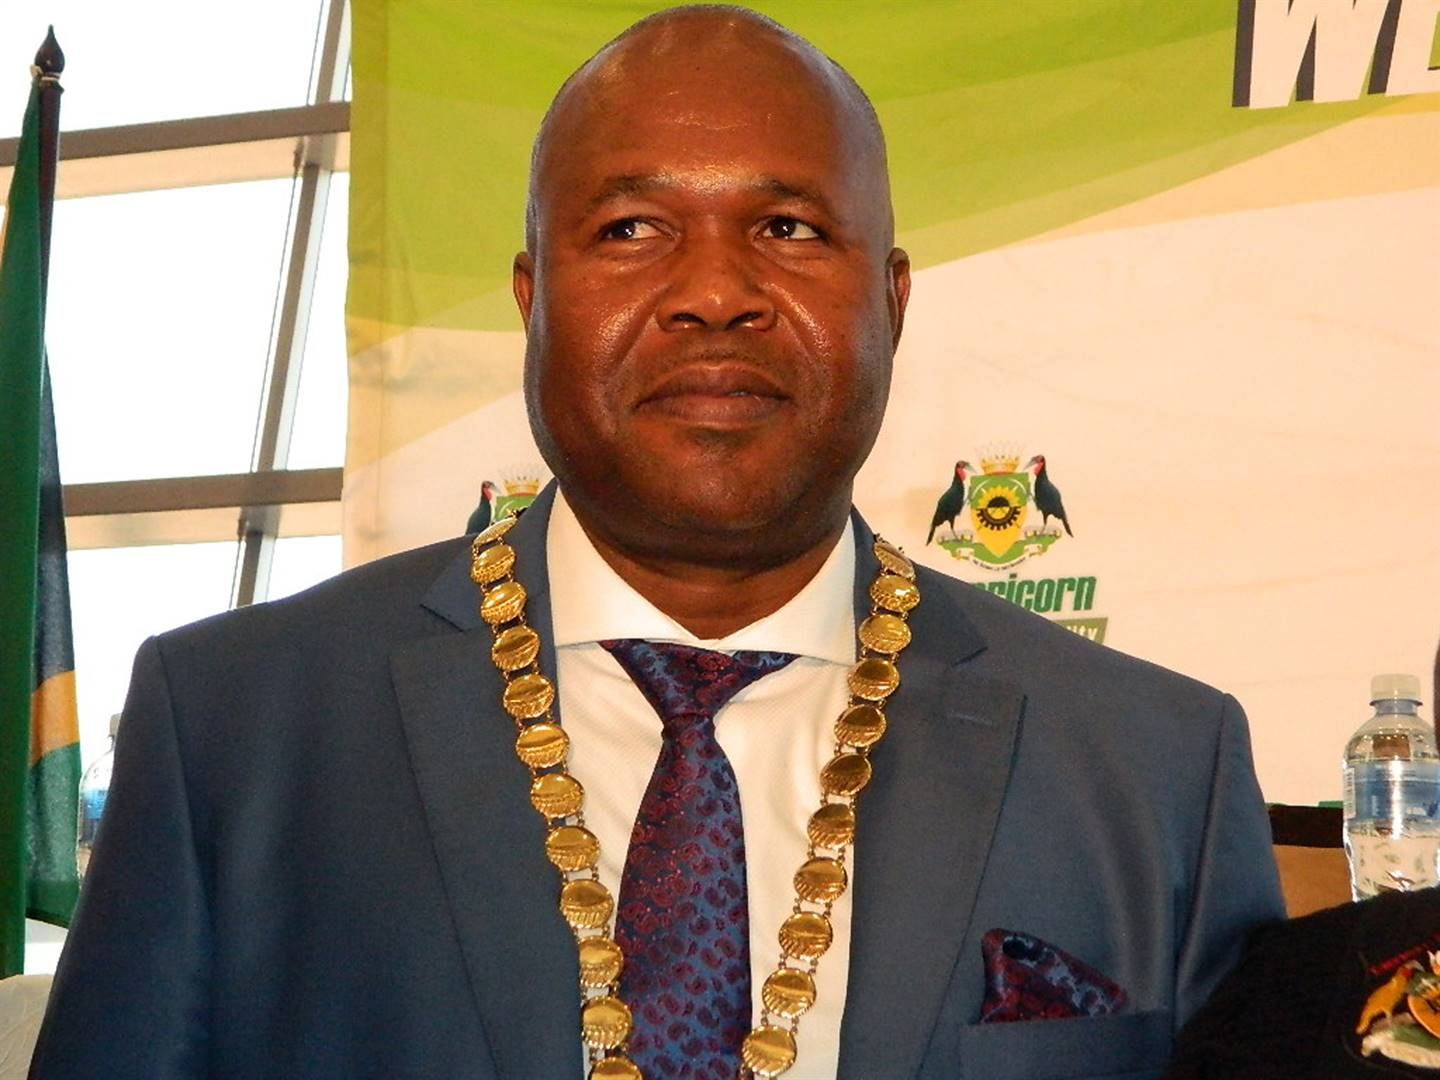 Limpopo municipalities spend R249m on consultants but only one receives clean audit | Citypress - News24